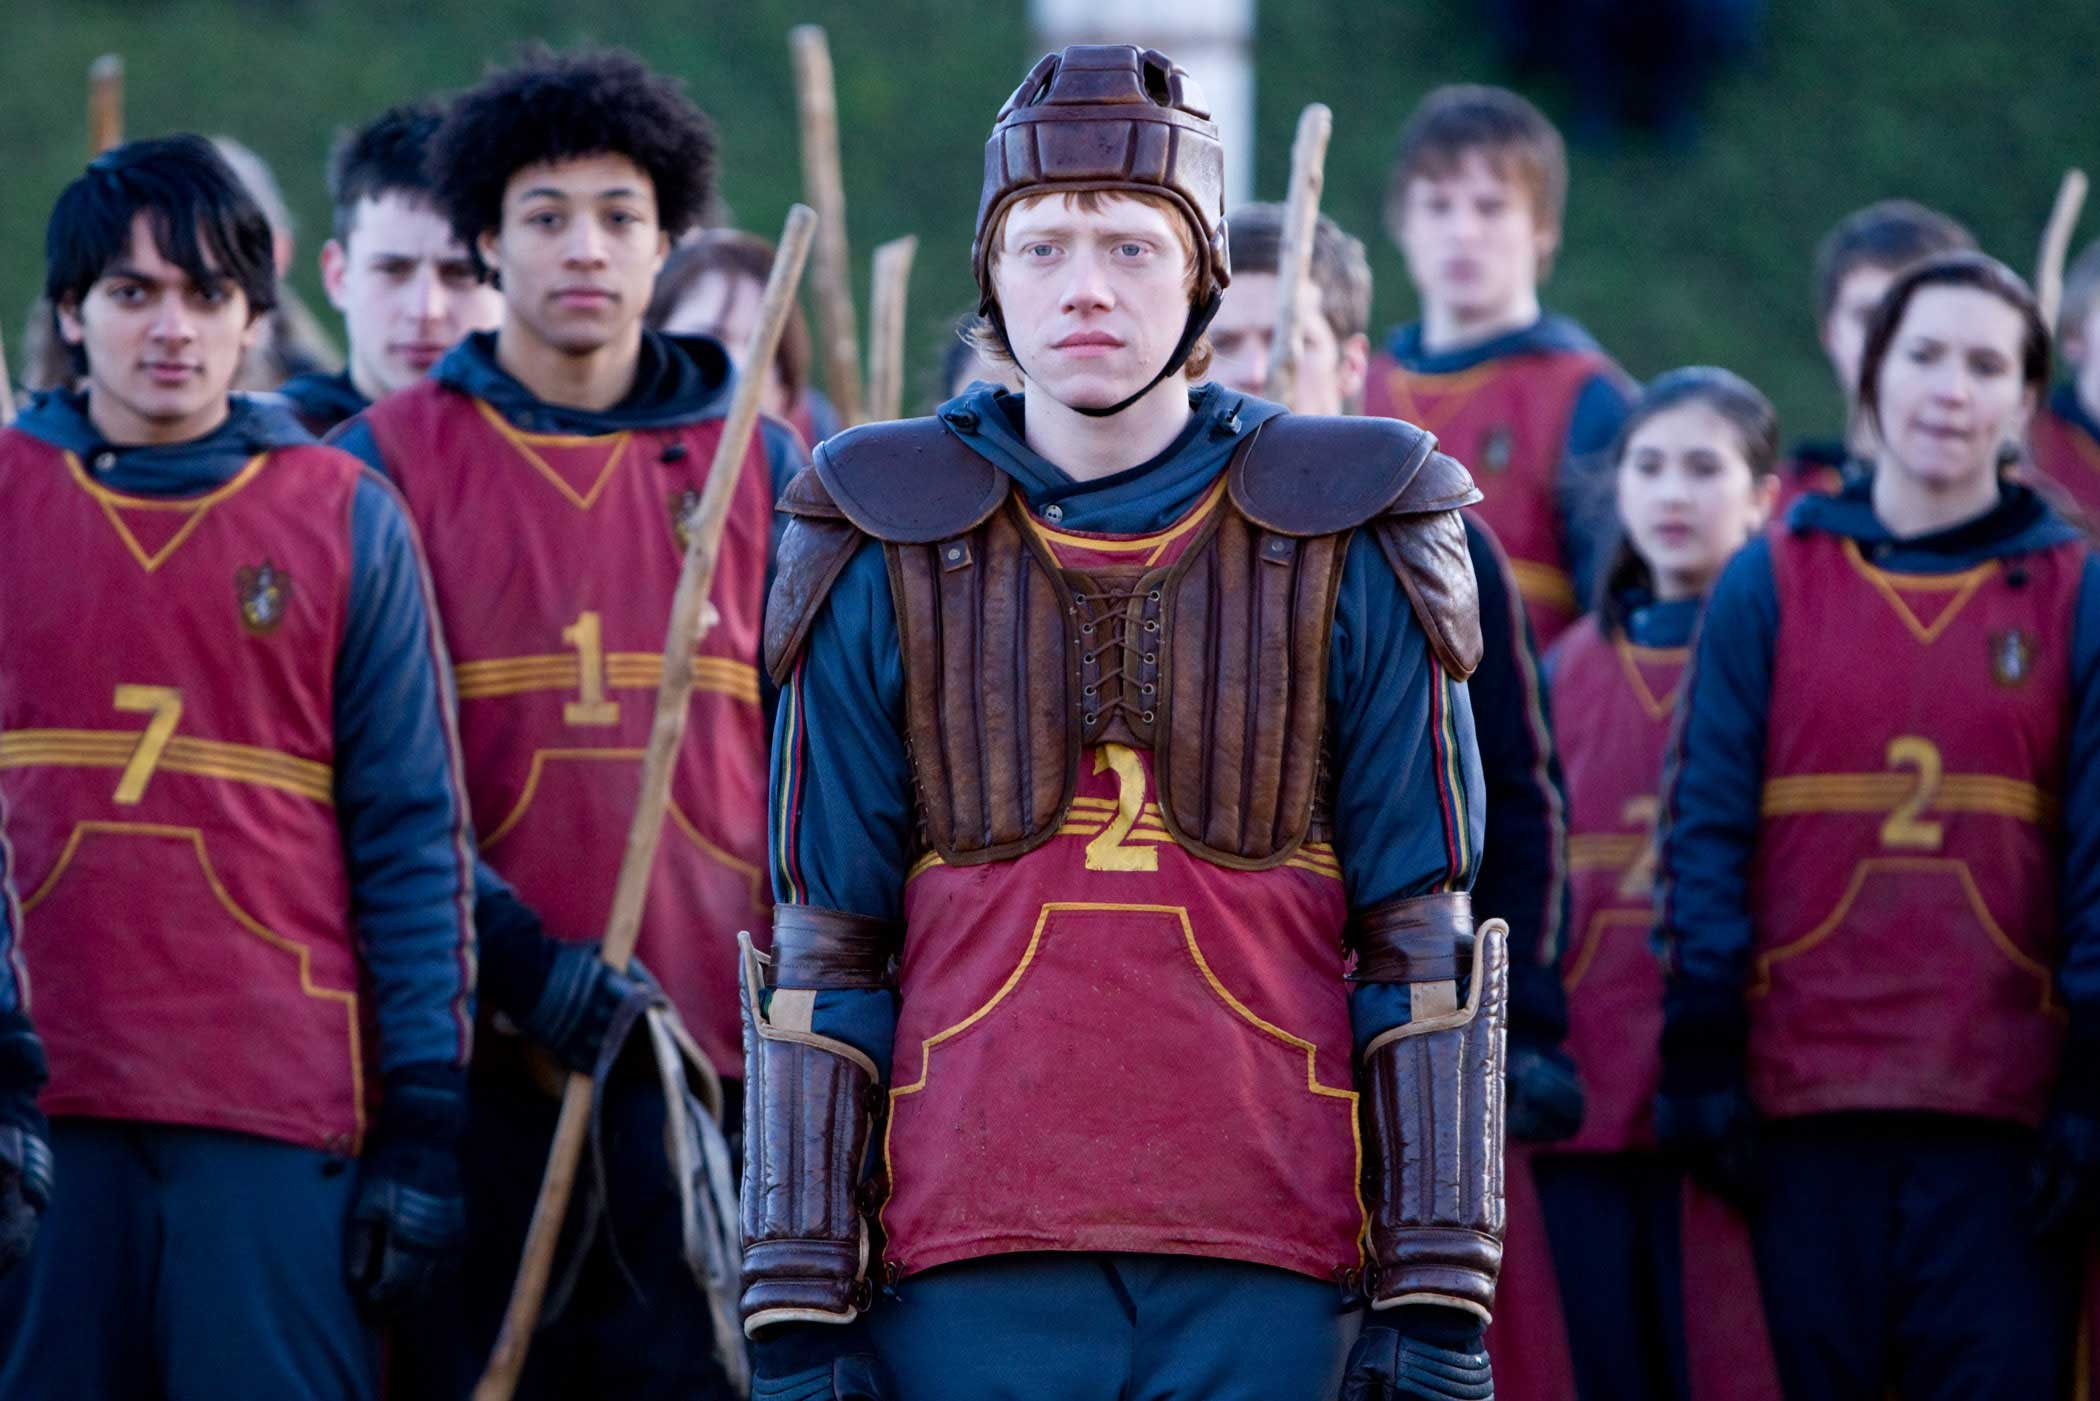 Jeu des images (version HP) - Page 6 Ron_in_Quidditch